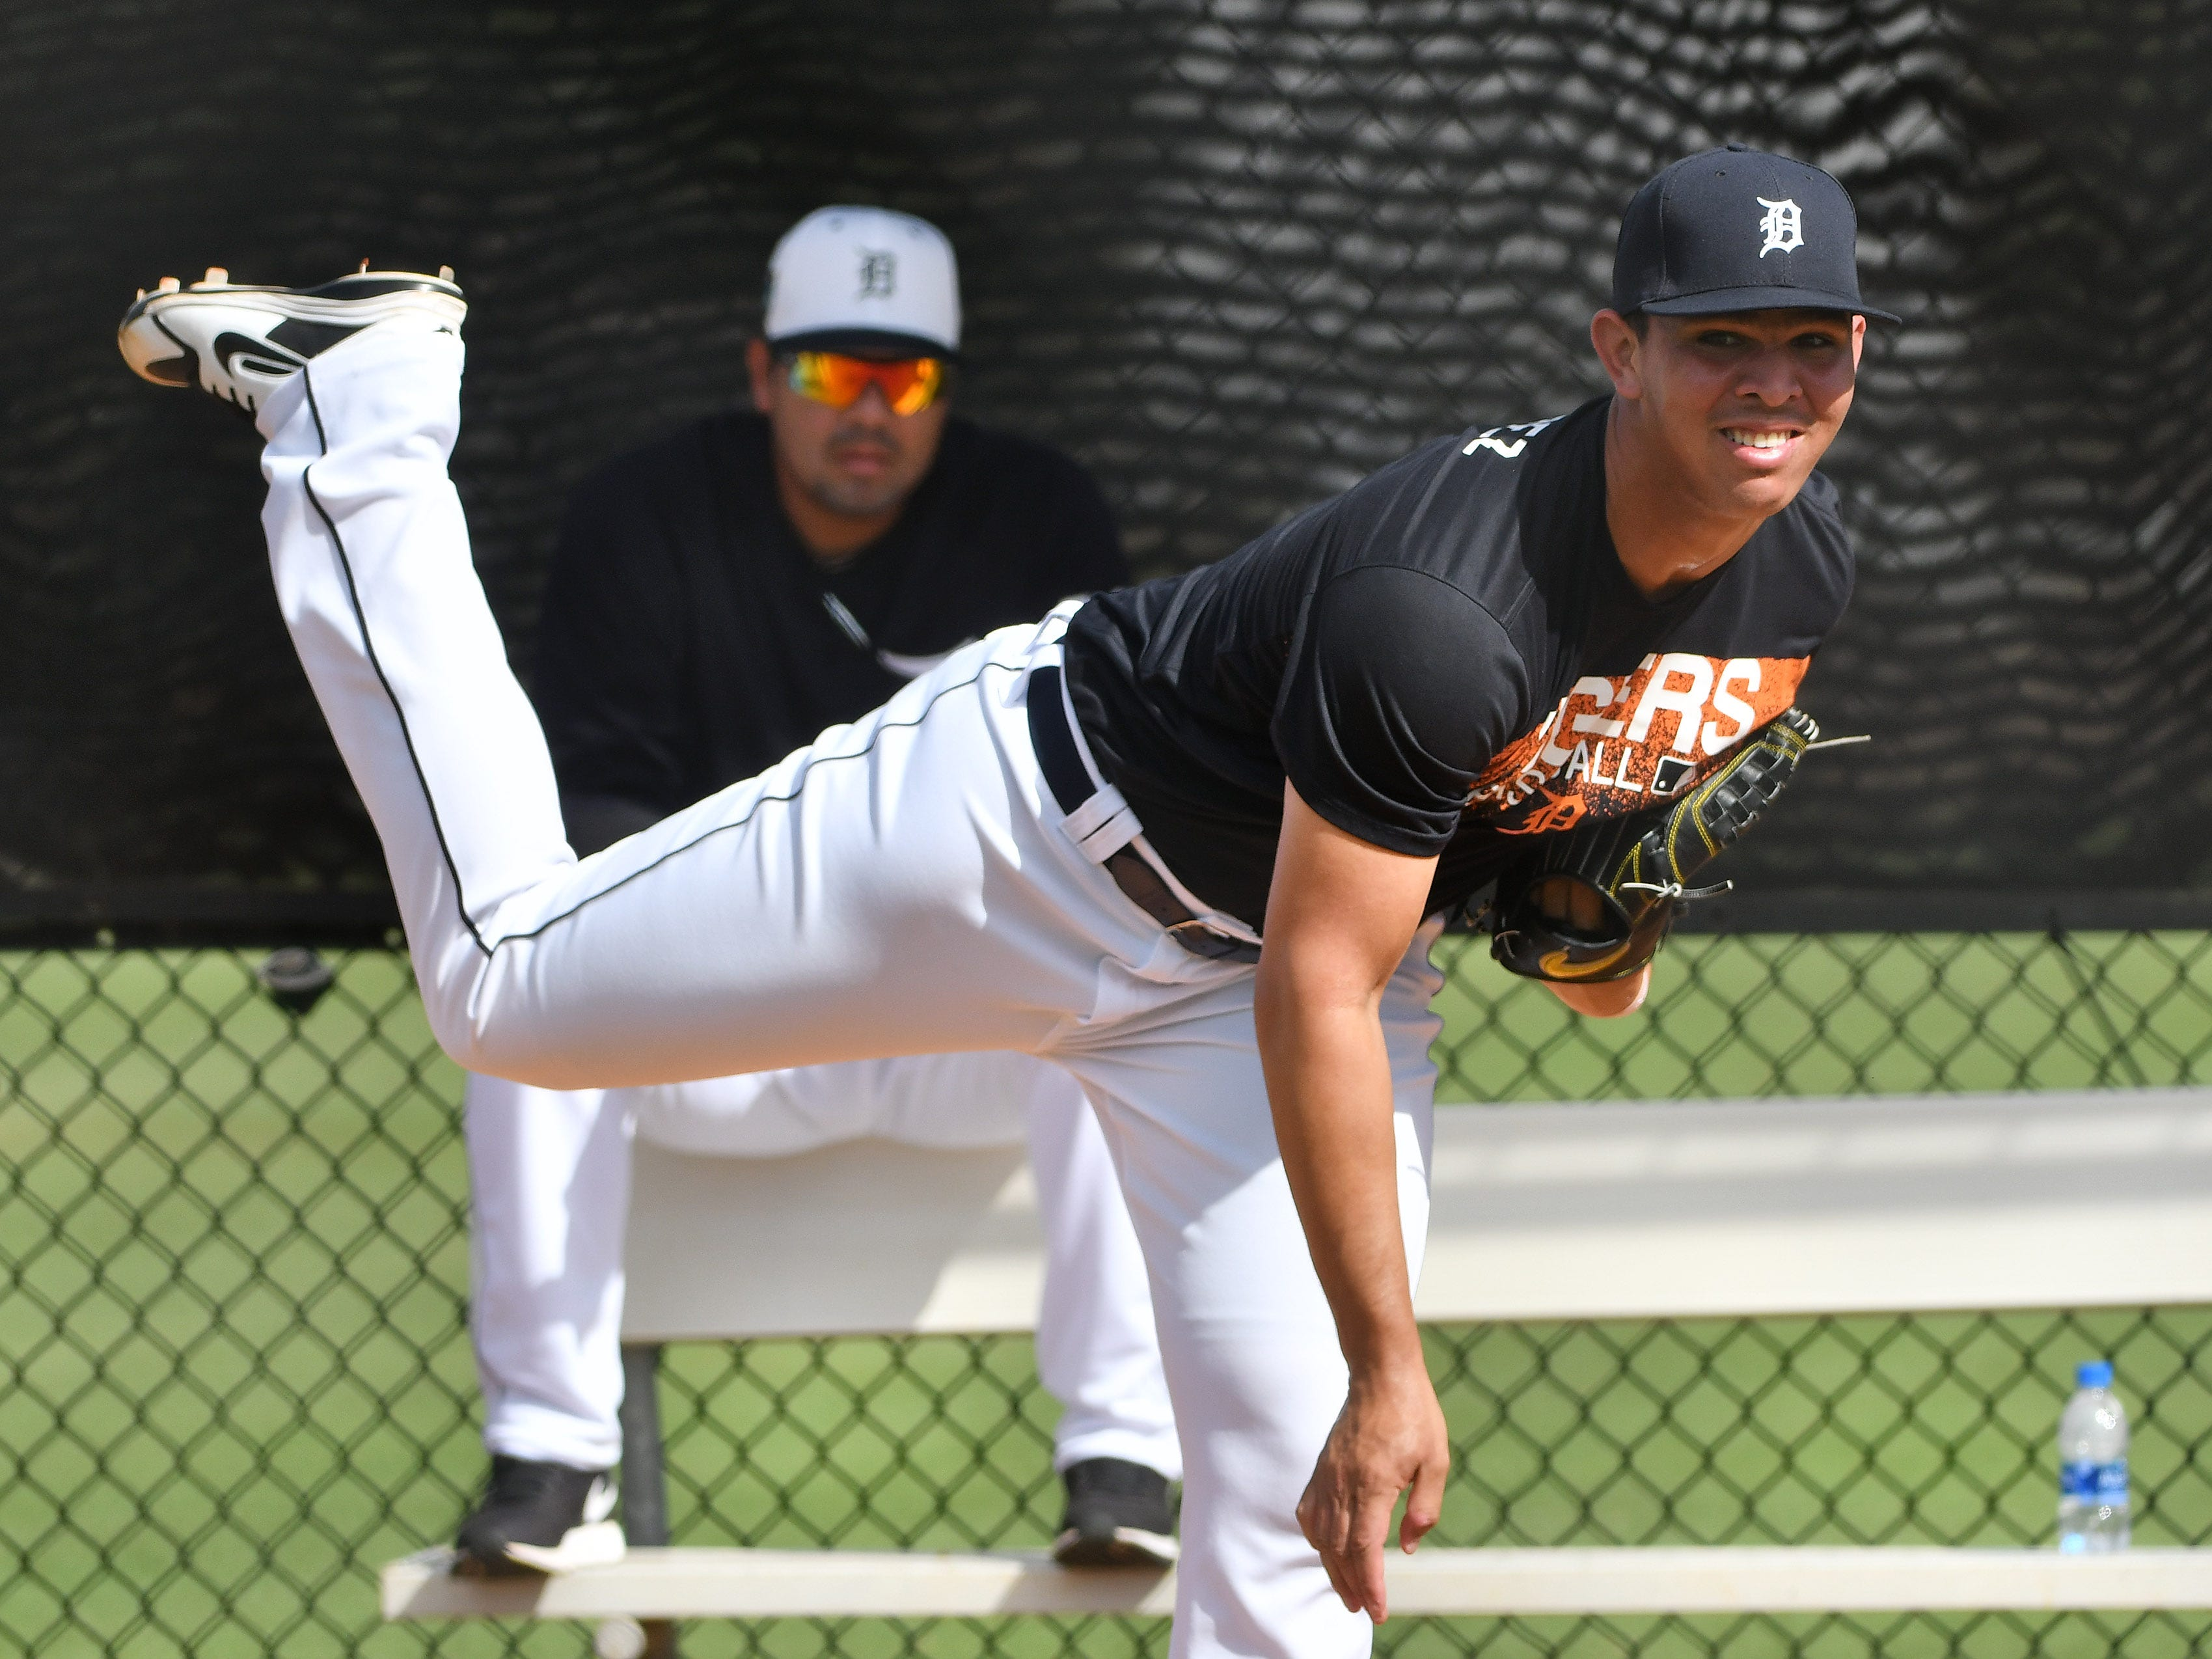 Tigers add Franklin Perez to 40-man roster ahead of Rule 5 draft